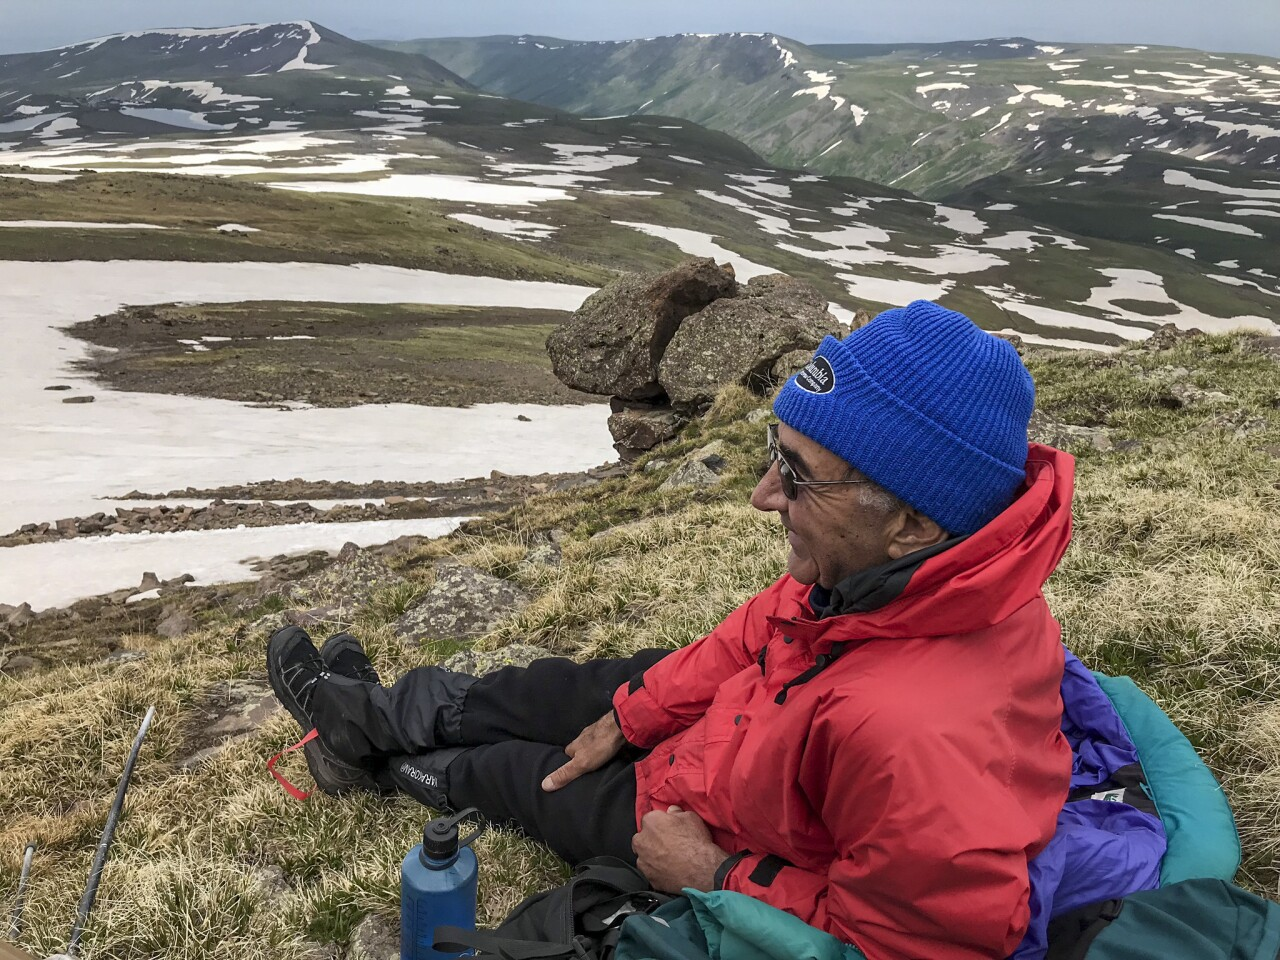 After hiking to Mt. Aragats' south peak, it's time to sit down and have some hot tea.